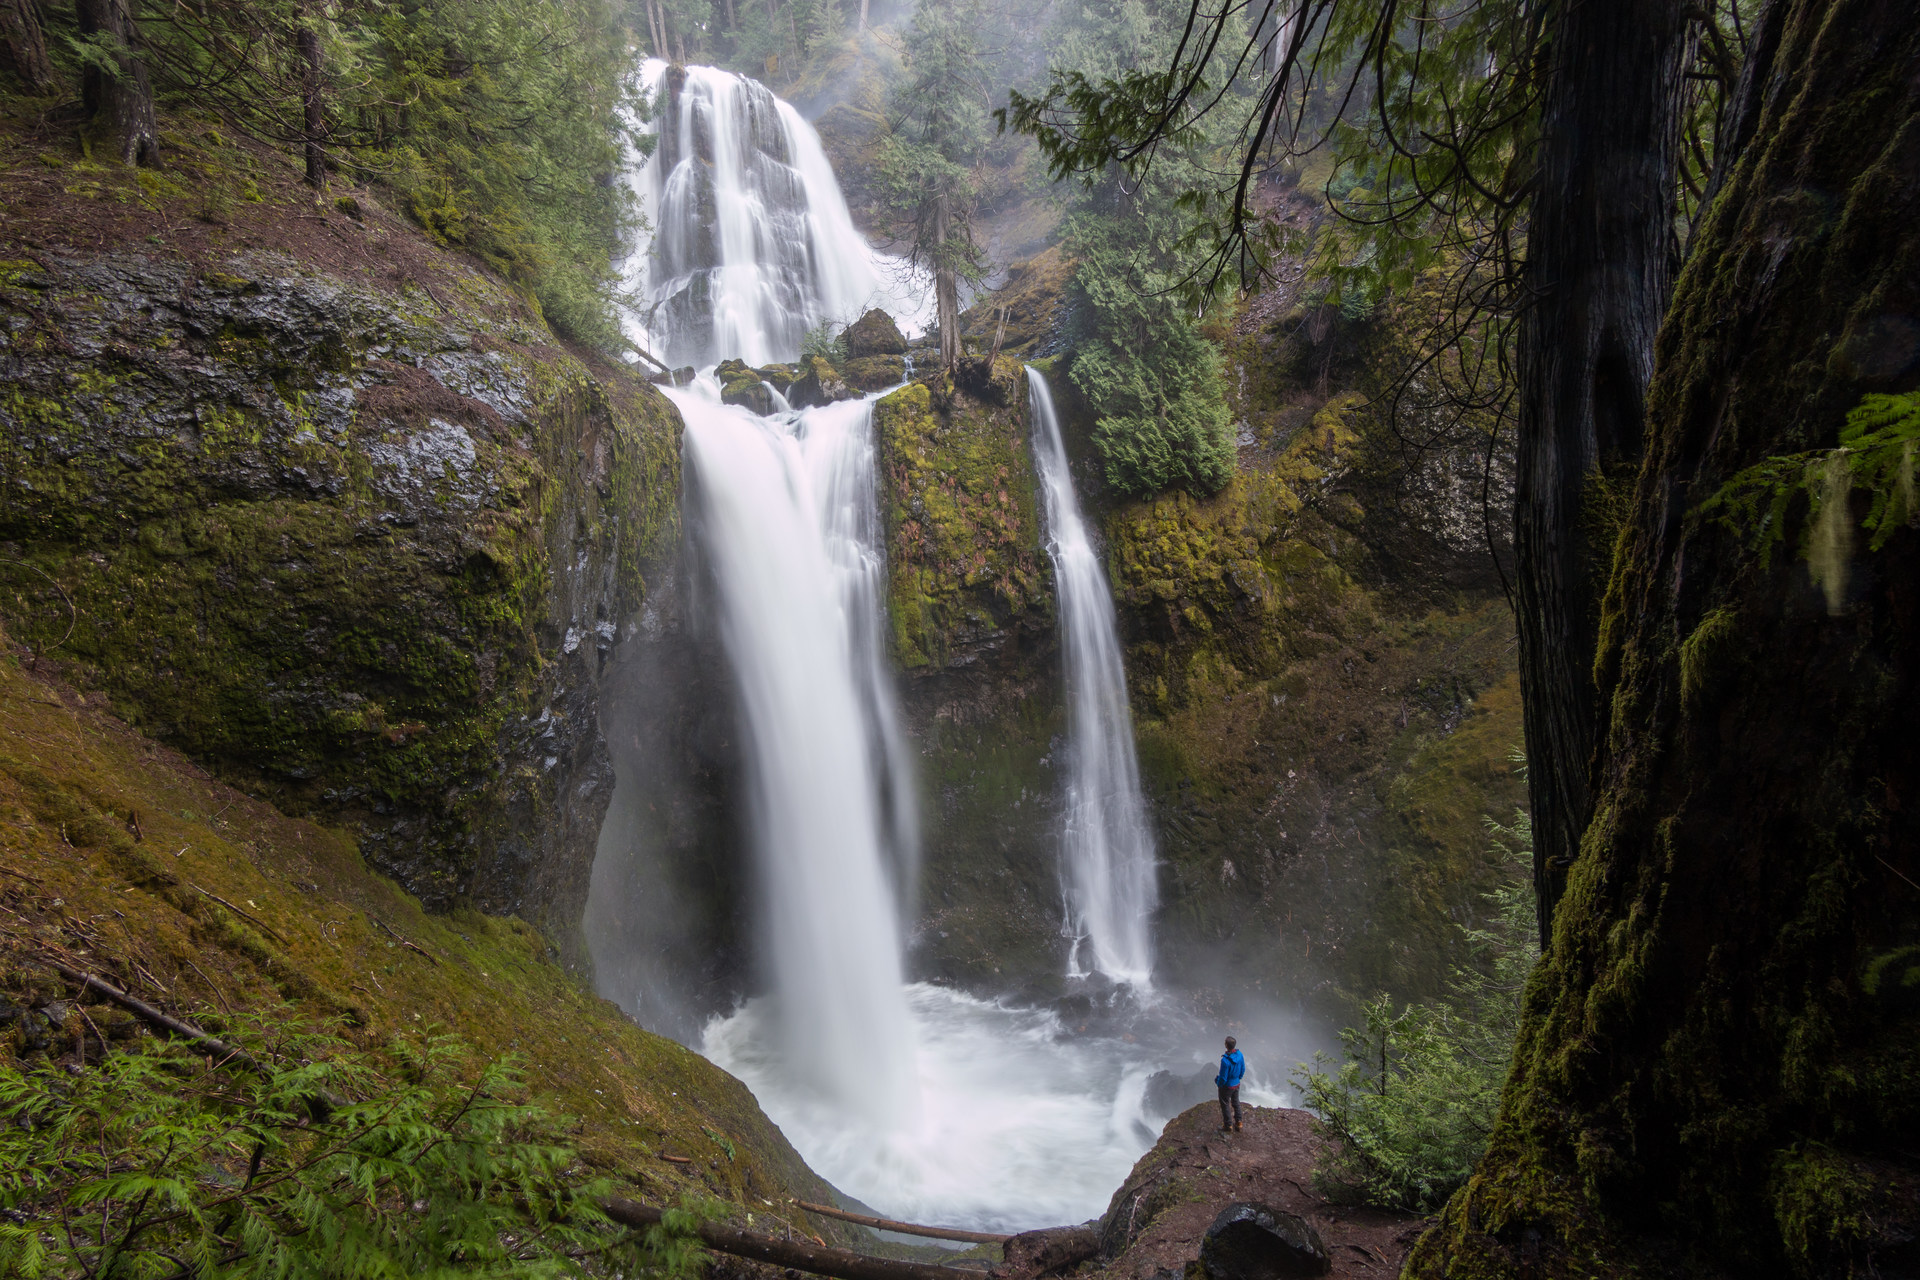 waterfalls on the washington side of the columbia river